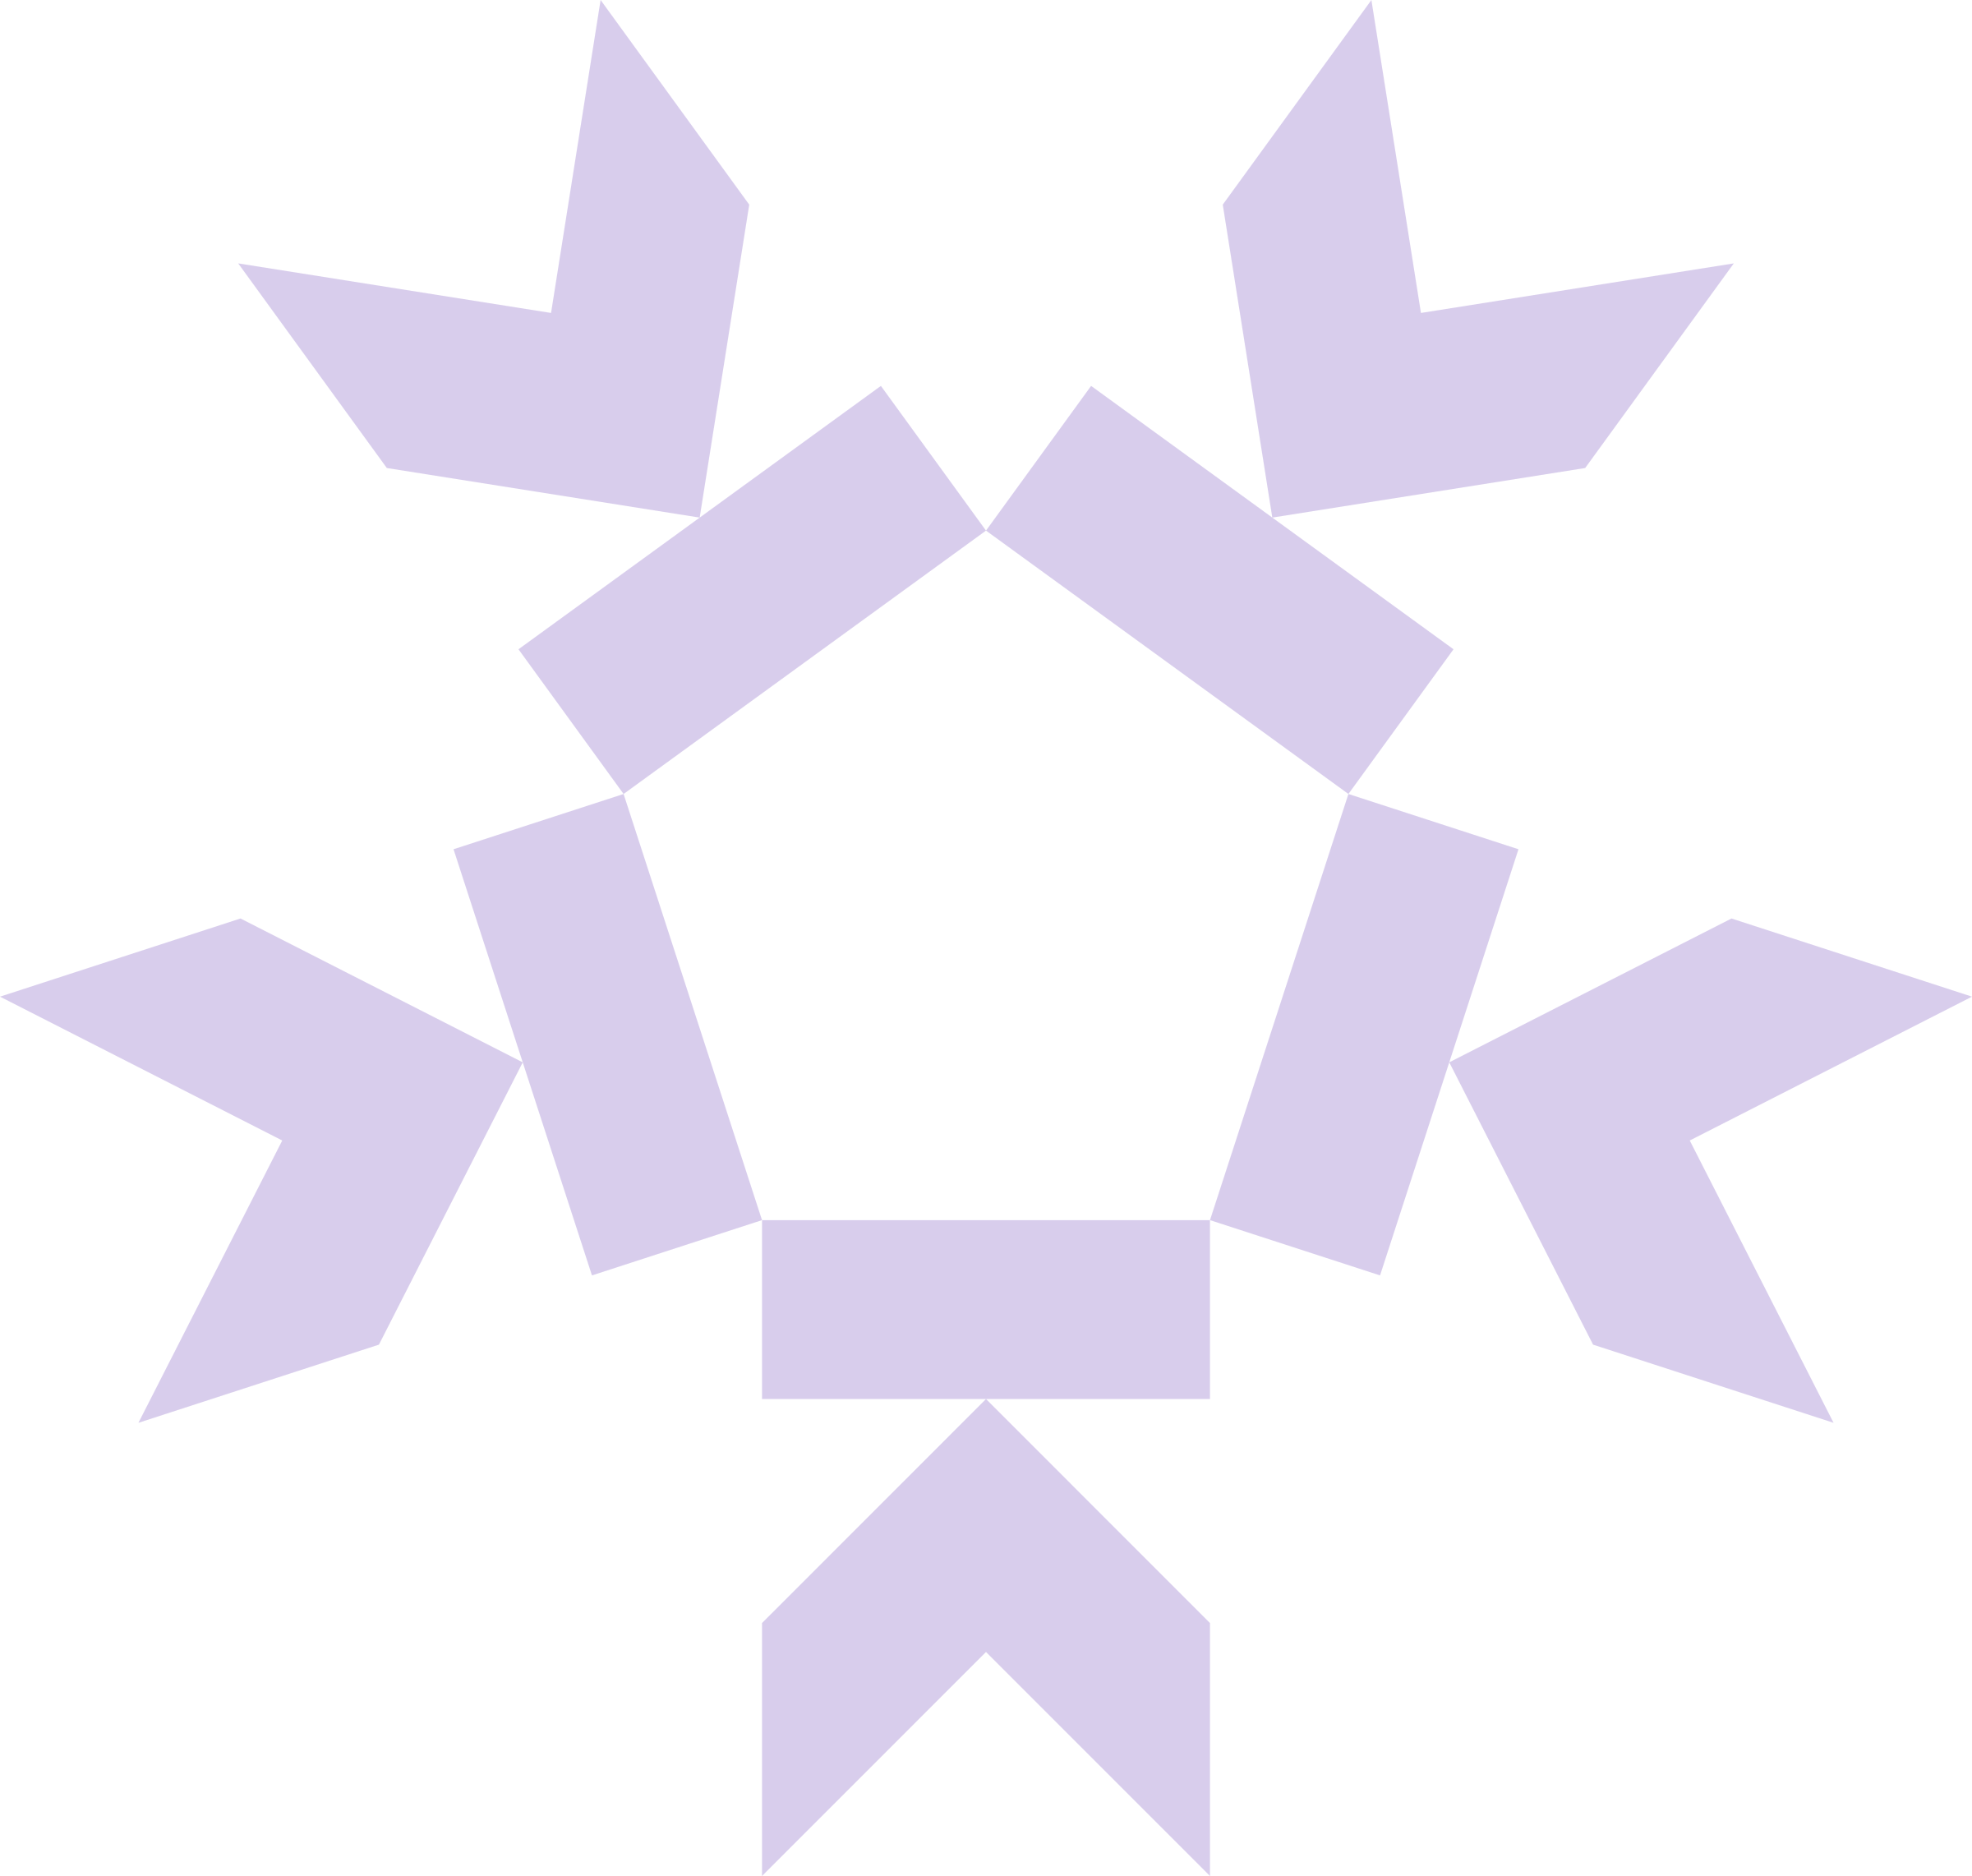 5k Snowflake by tuxwrench